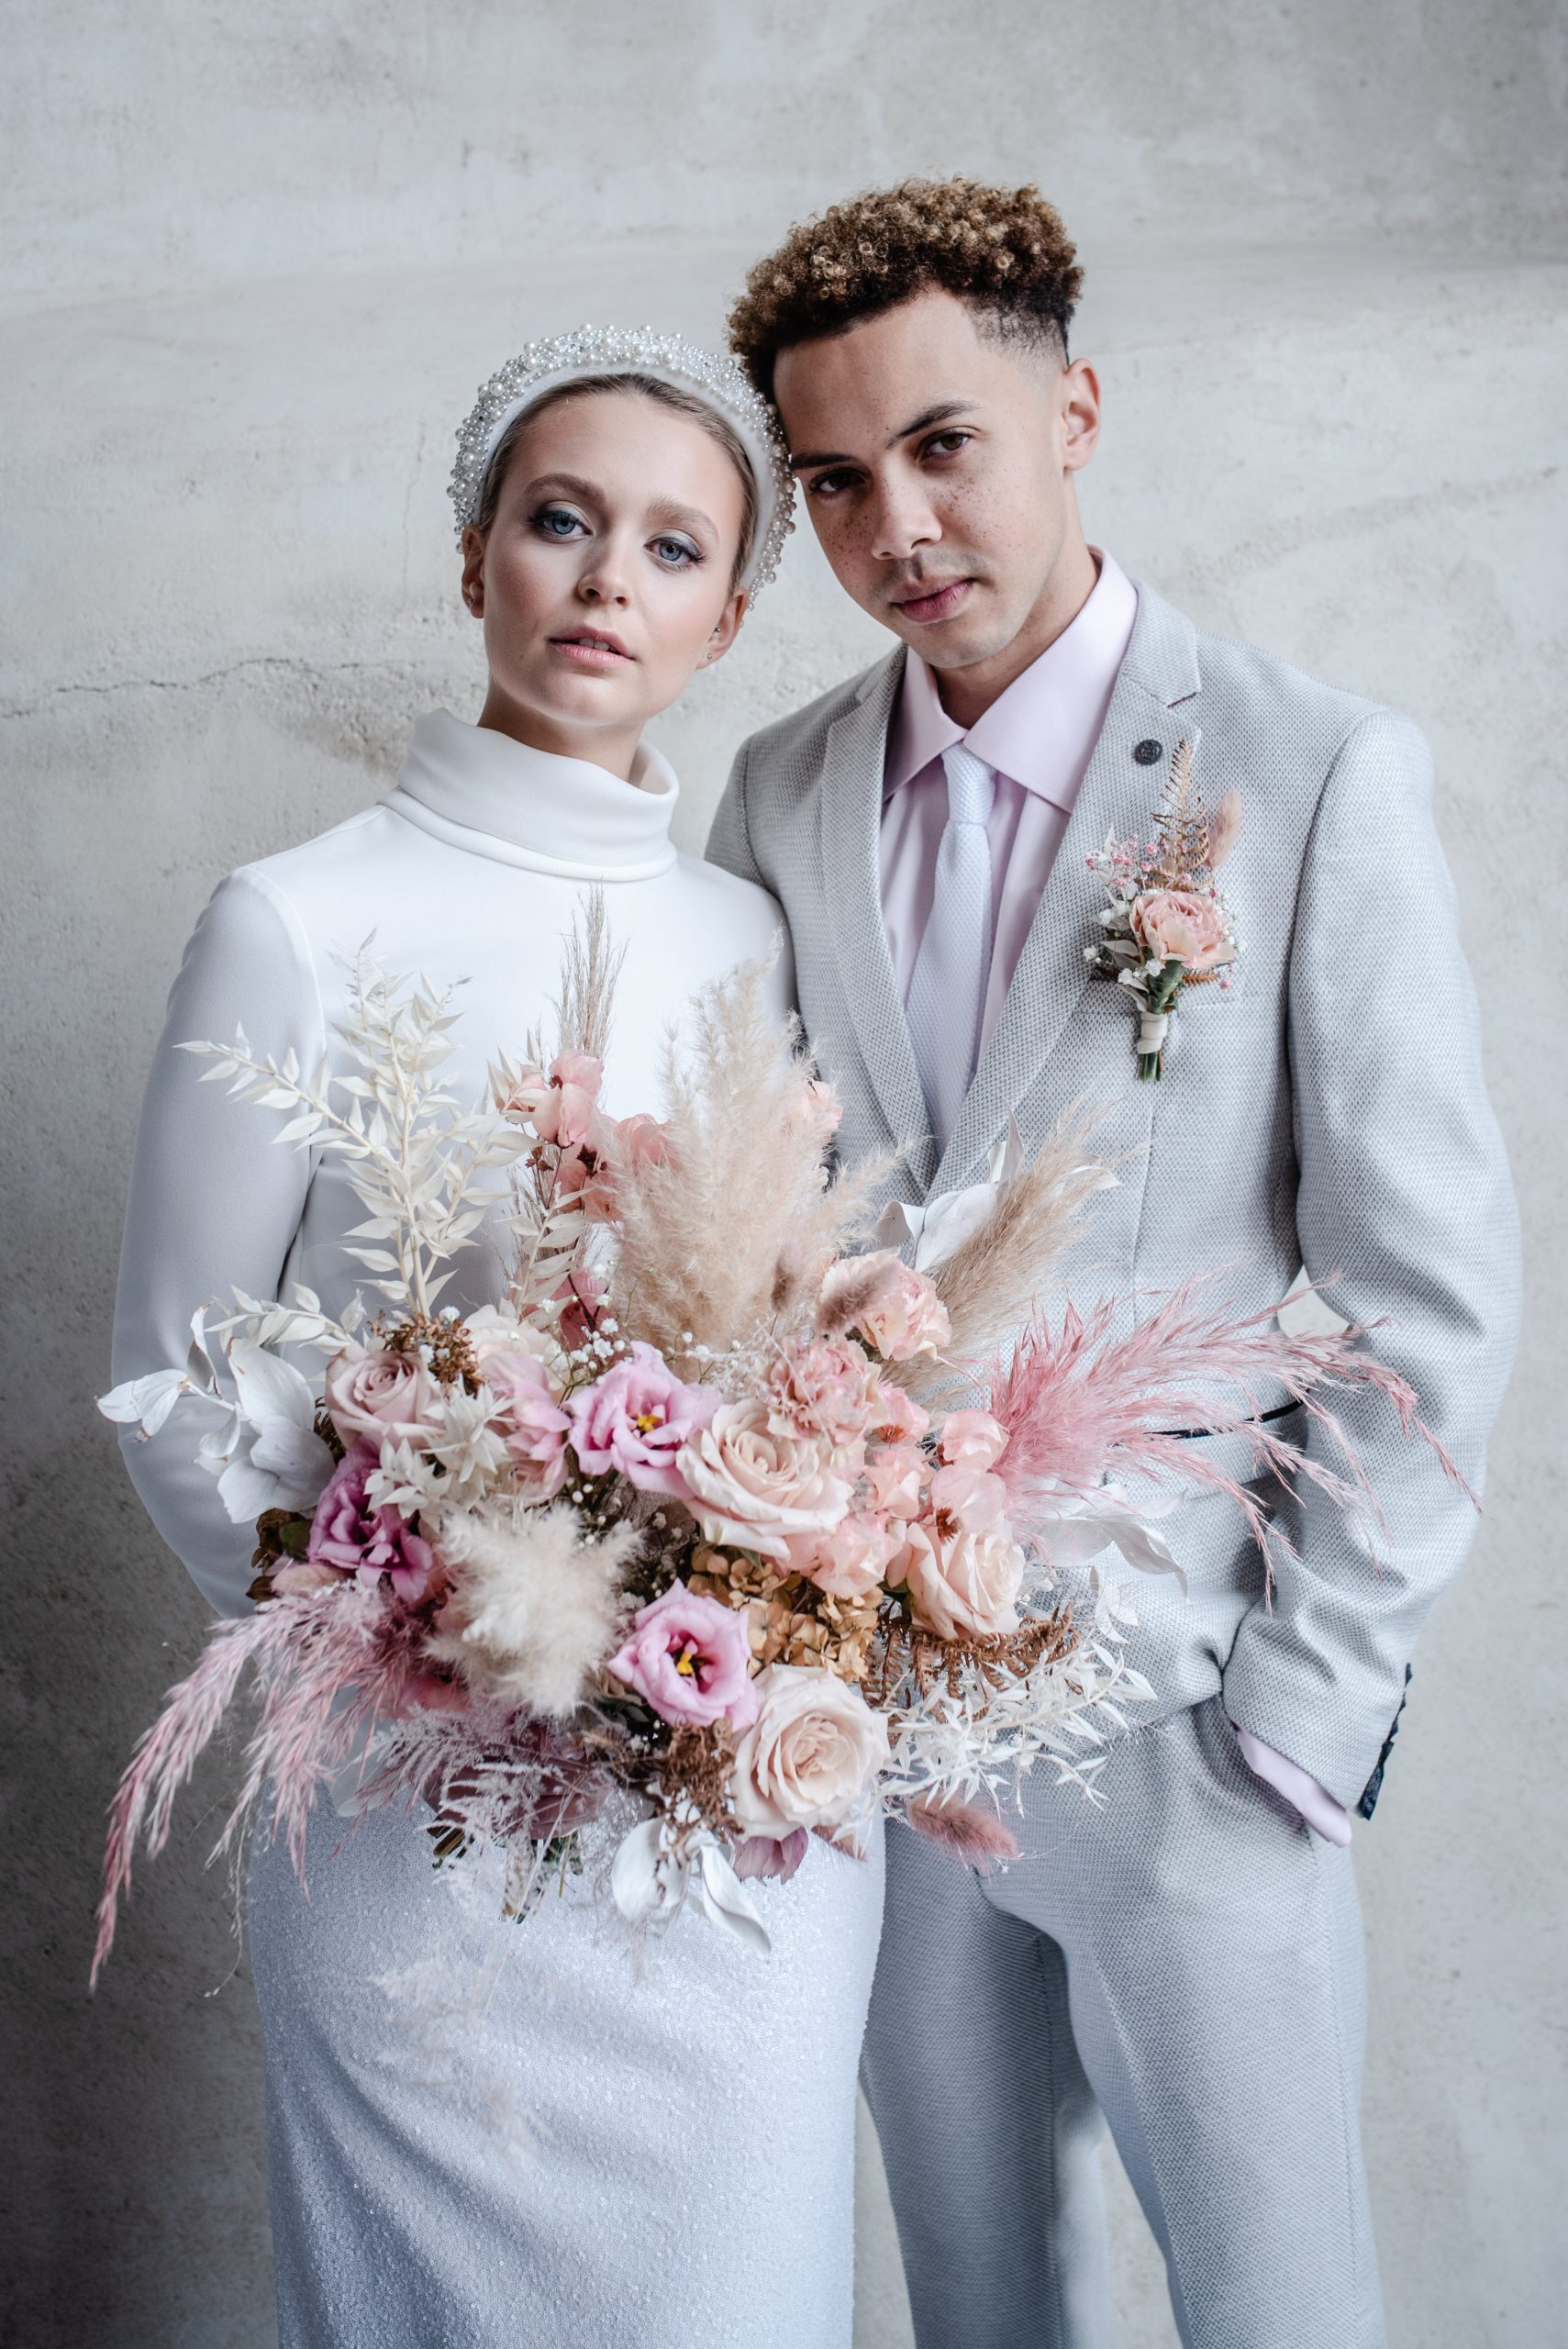 bride and groom pastel styled shoot large dried flower bouquet